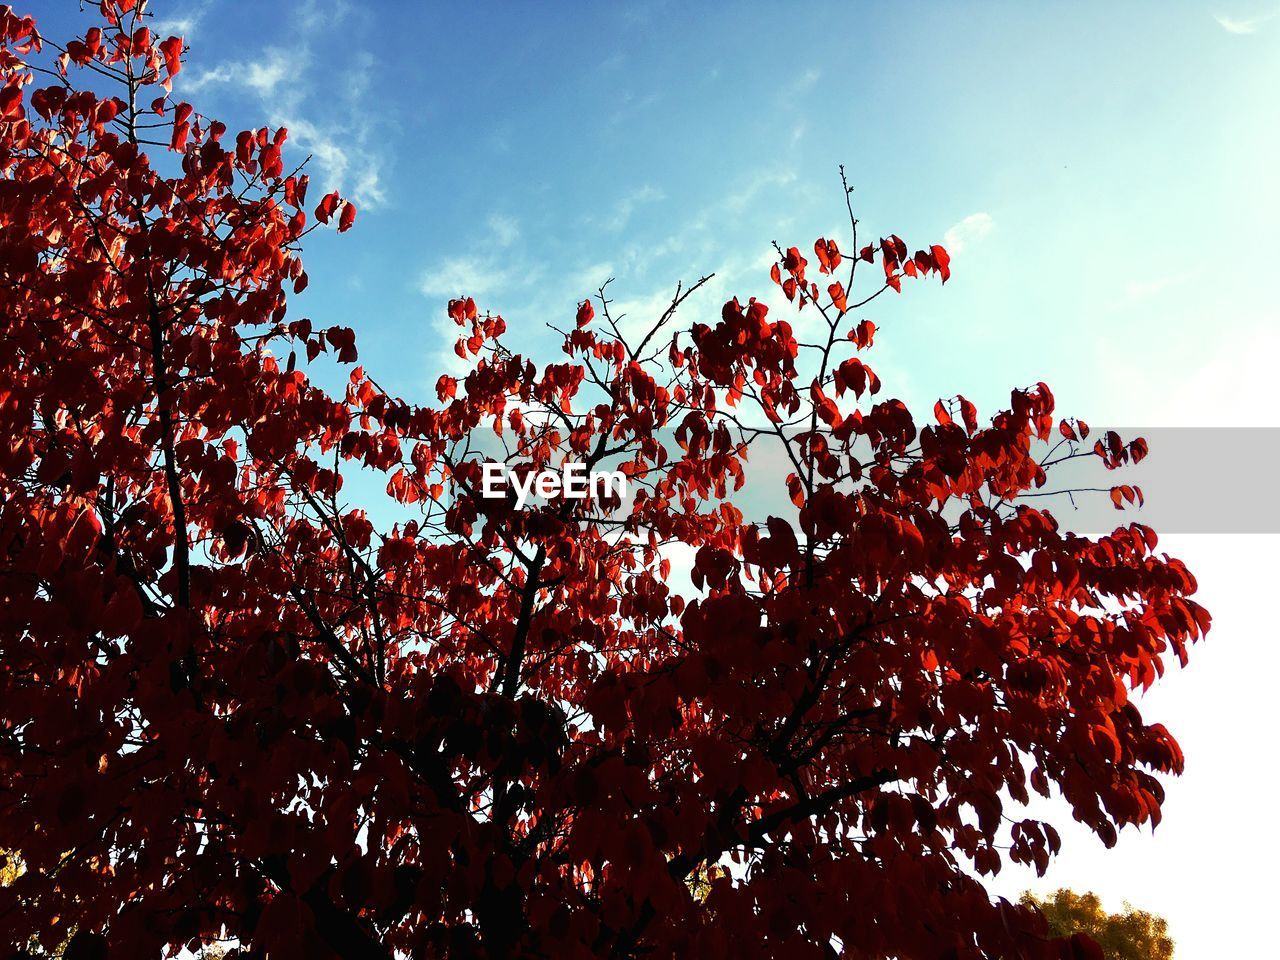 sky, tree, plant, low angle view, beauty in nature, growth, flower, nature, no people, cloud - sky, flowering plant, branch, day, red, freshness, outdoors, tranquility, springtime, blossom, sunlight, cherry blossom